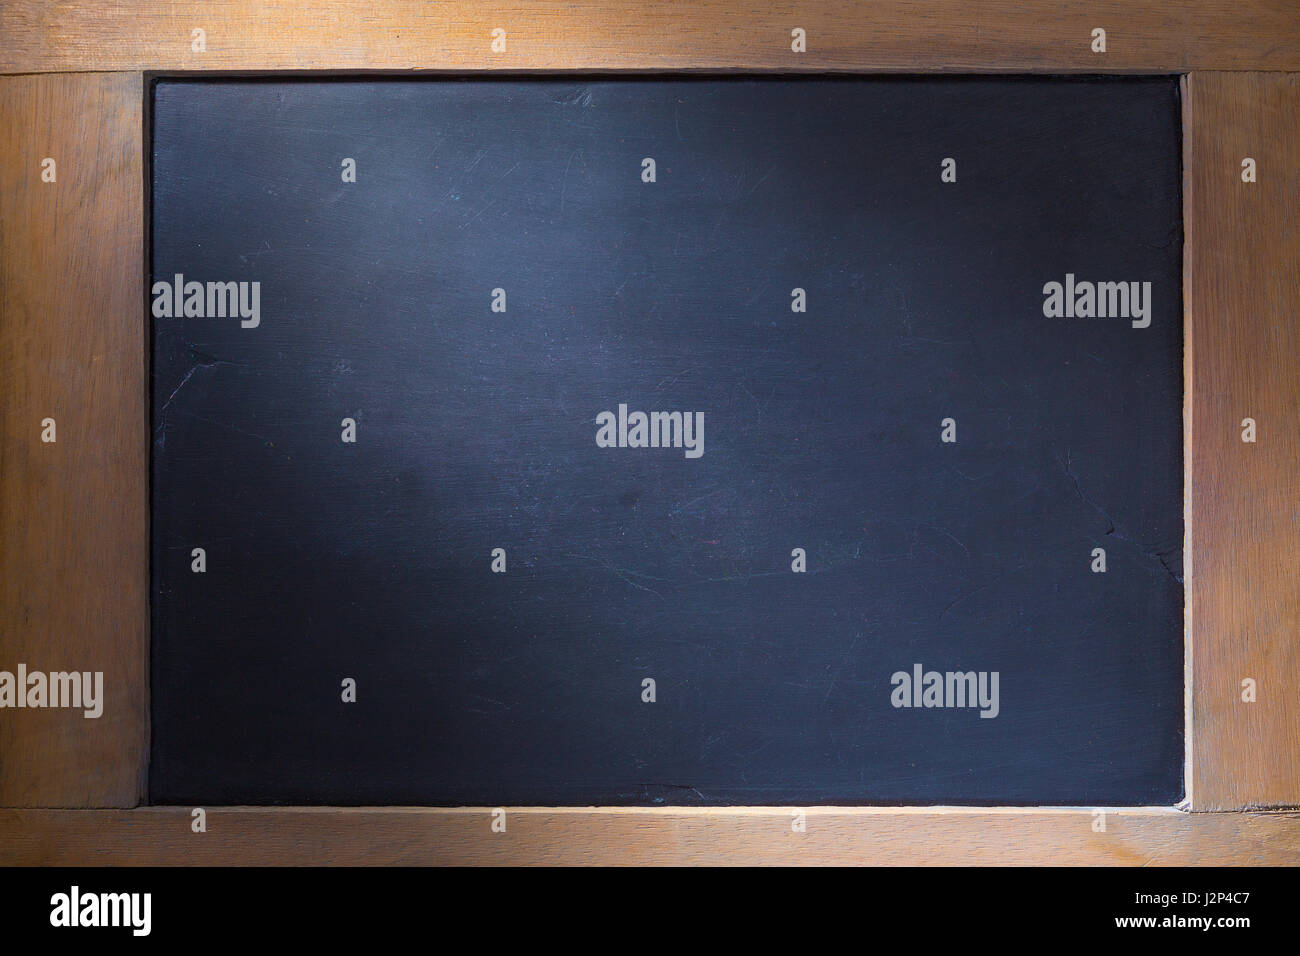 empty chalkboard background with wooden frame side lighting for old